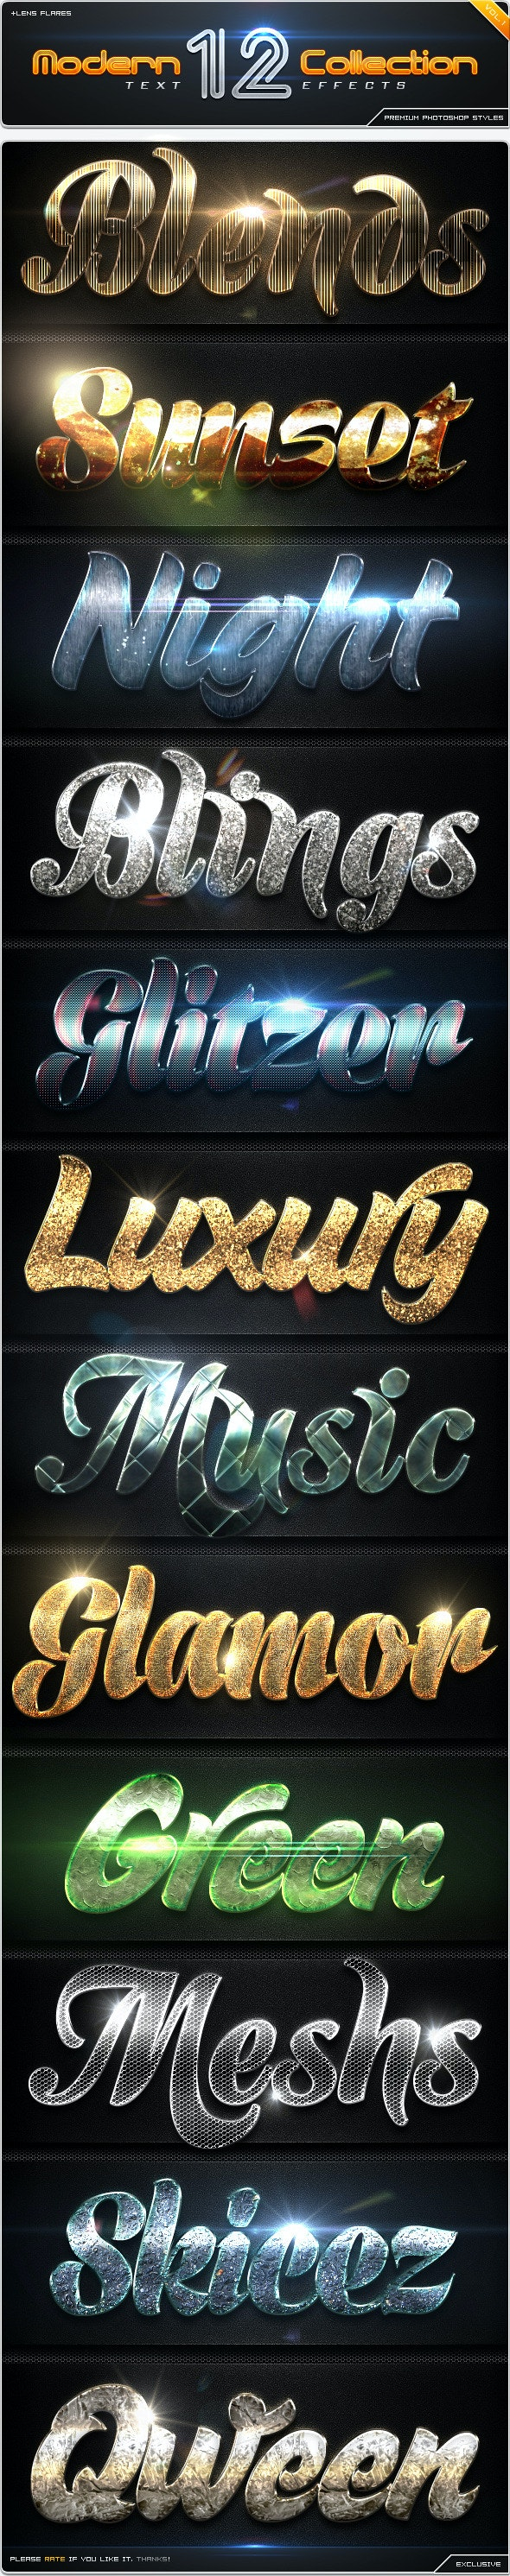 12 Modern Collection Text Effect Styles Vol.1 - Text Effects Styles